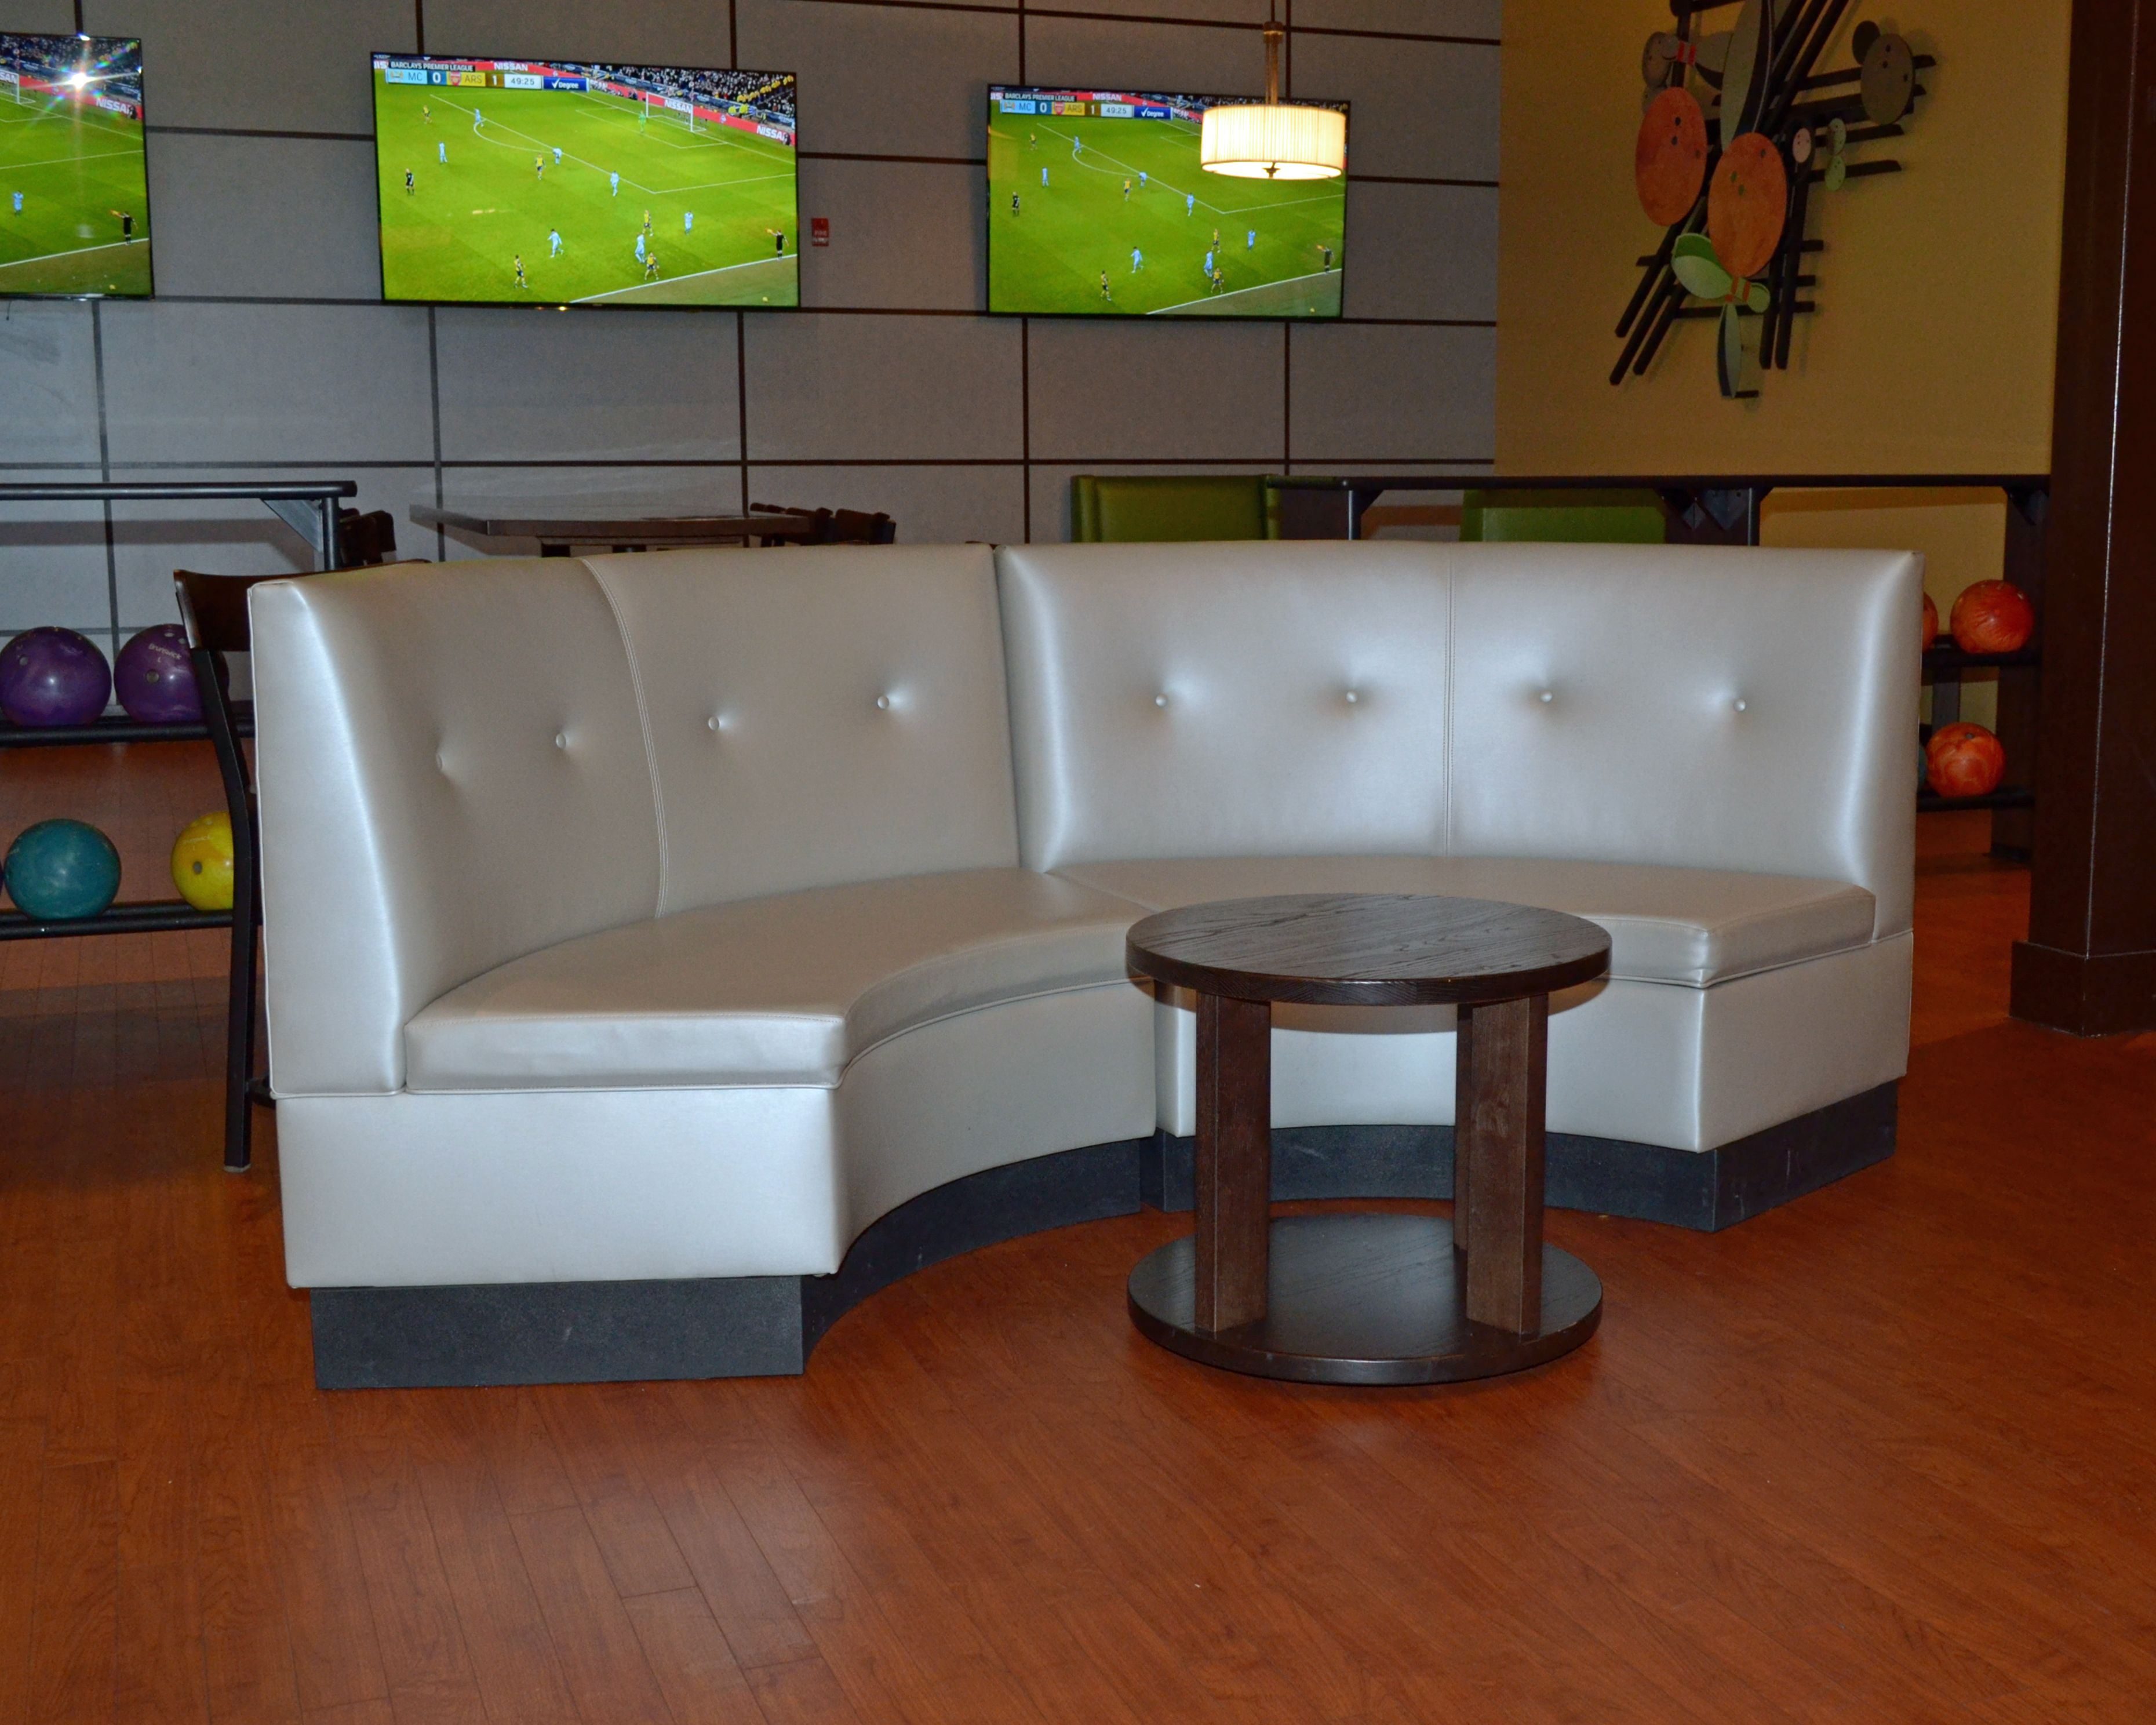 CW Lanes And Games #Lincoln #RhodeIsland #Bowling #Furniture  #VenueFurniture #BowlingFurniture